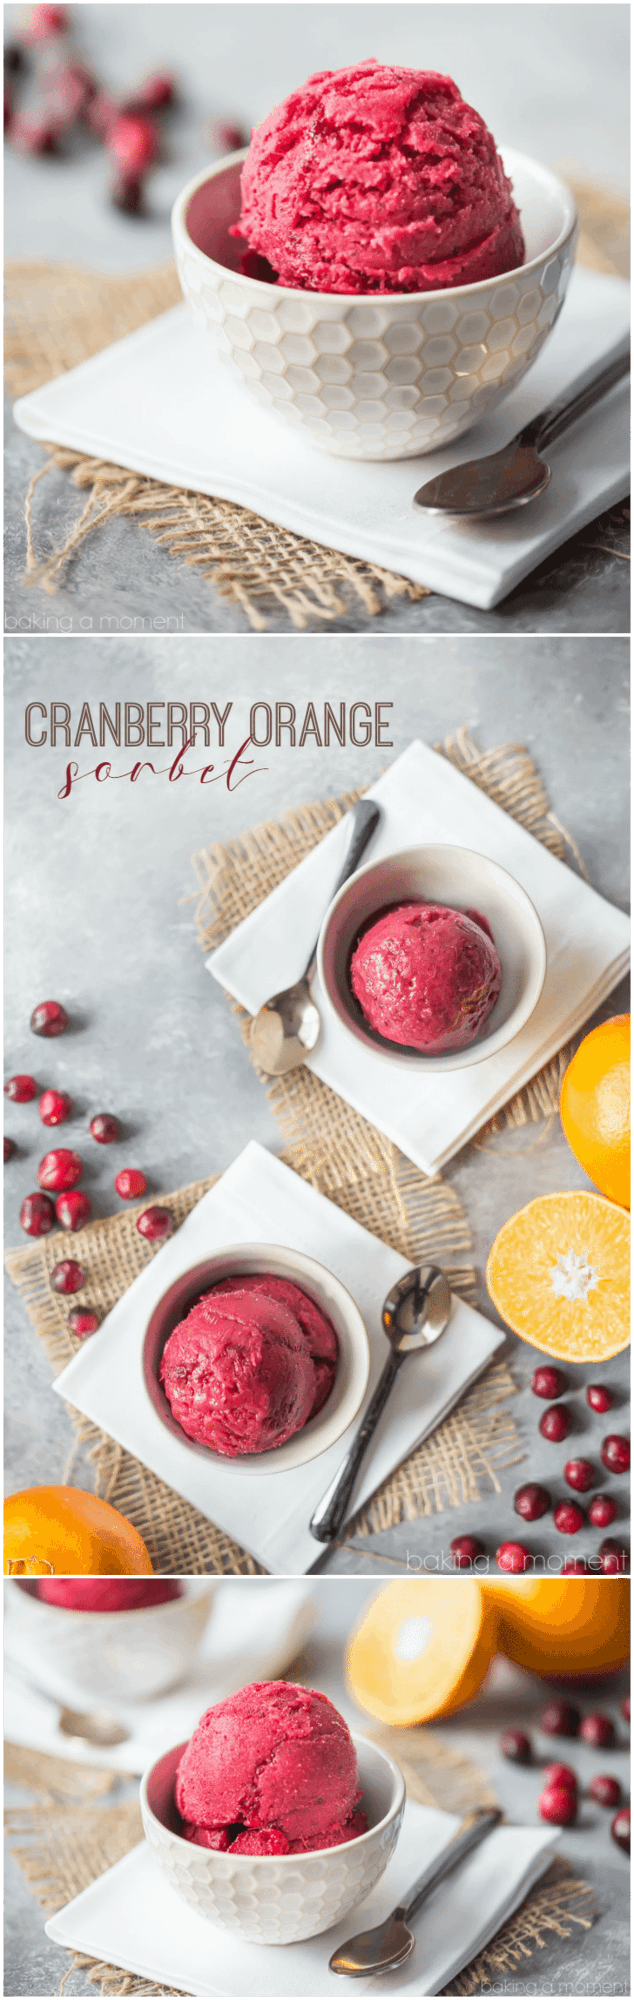 Cranberry orange sorbet: a light and refreshing dessert for fall and winter. Make this seasonal frozen dessert this holiday! food desserts holiday